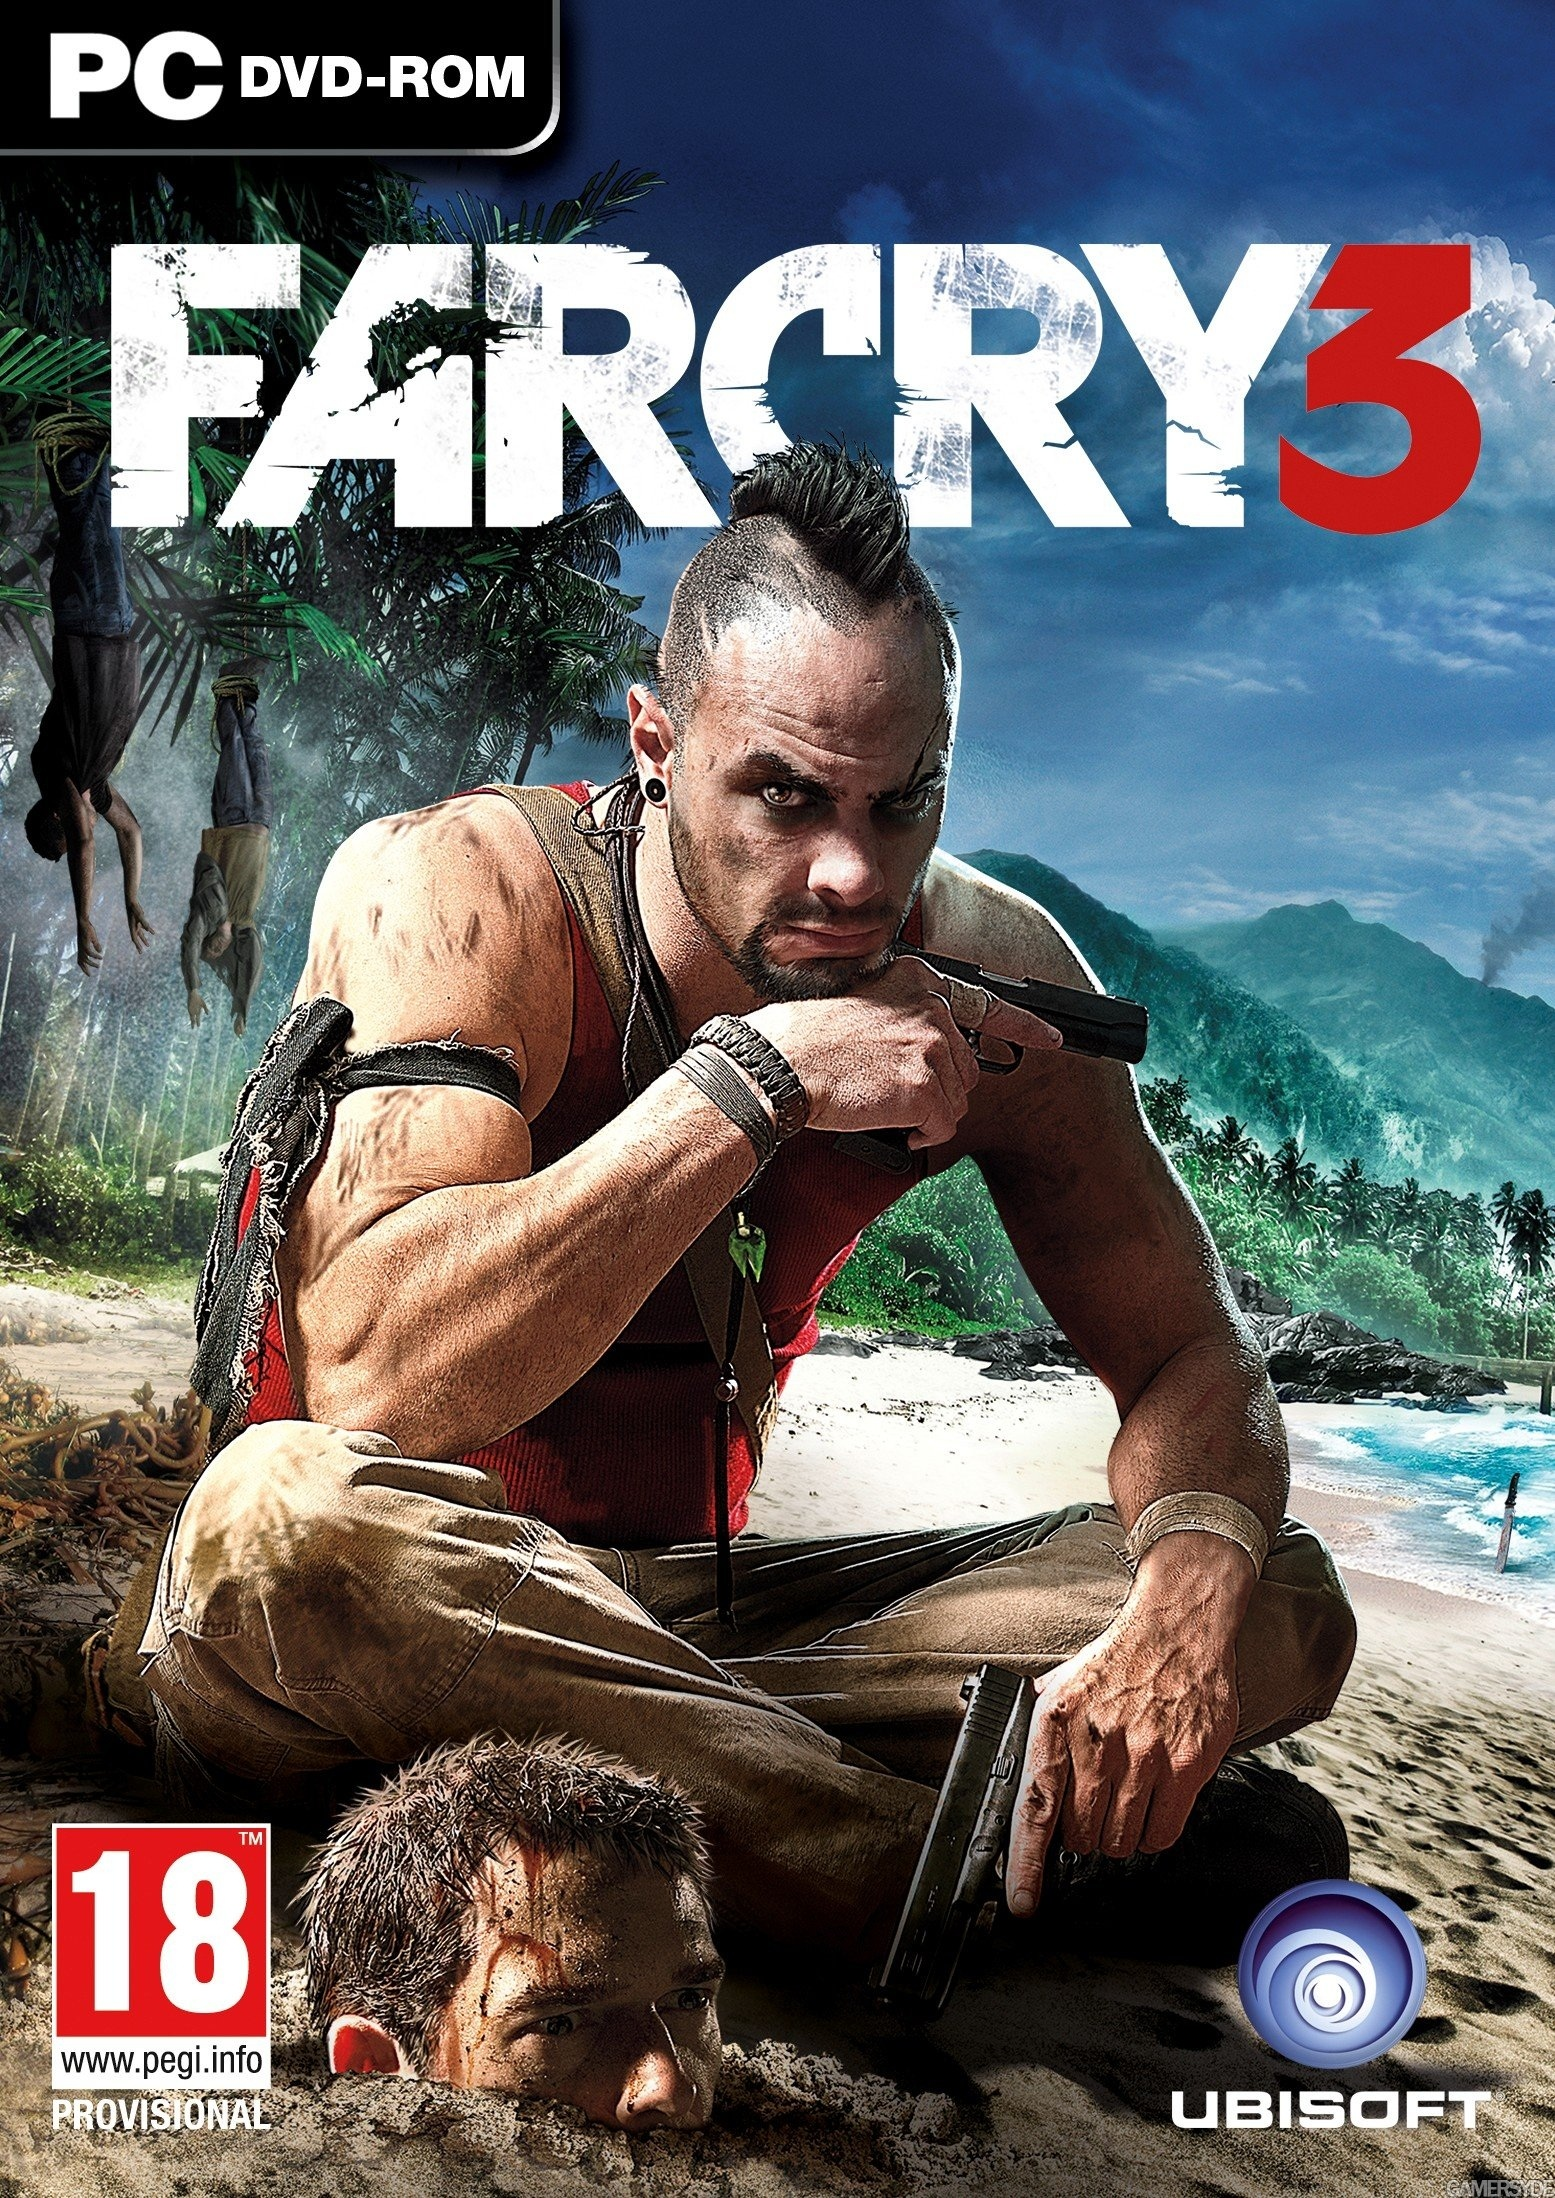 image far cry 3 18688 2324 0003 Review: Far Cry 3 (PC)